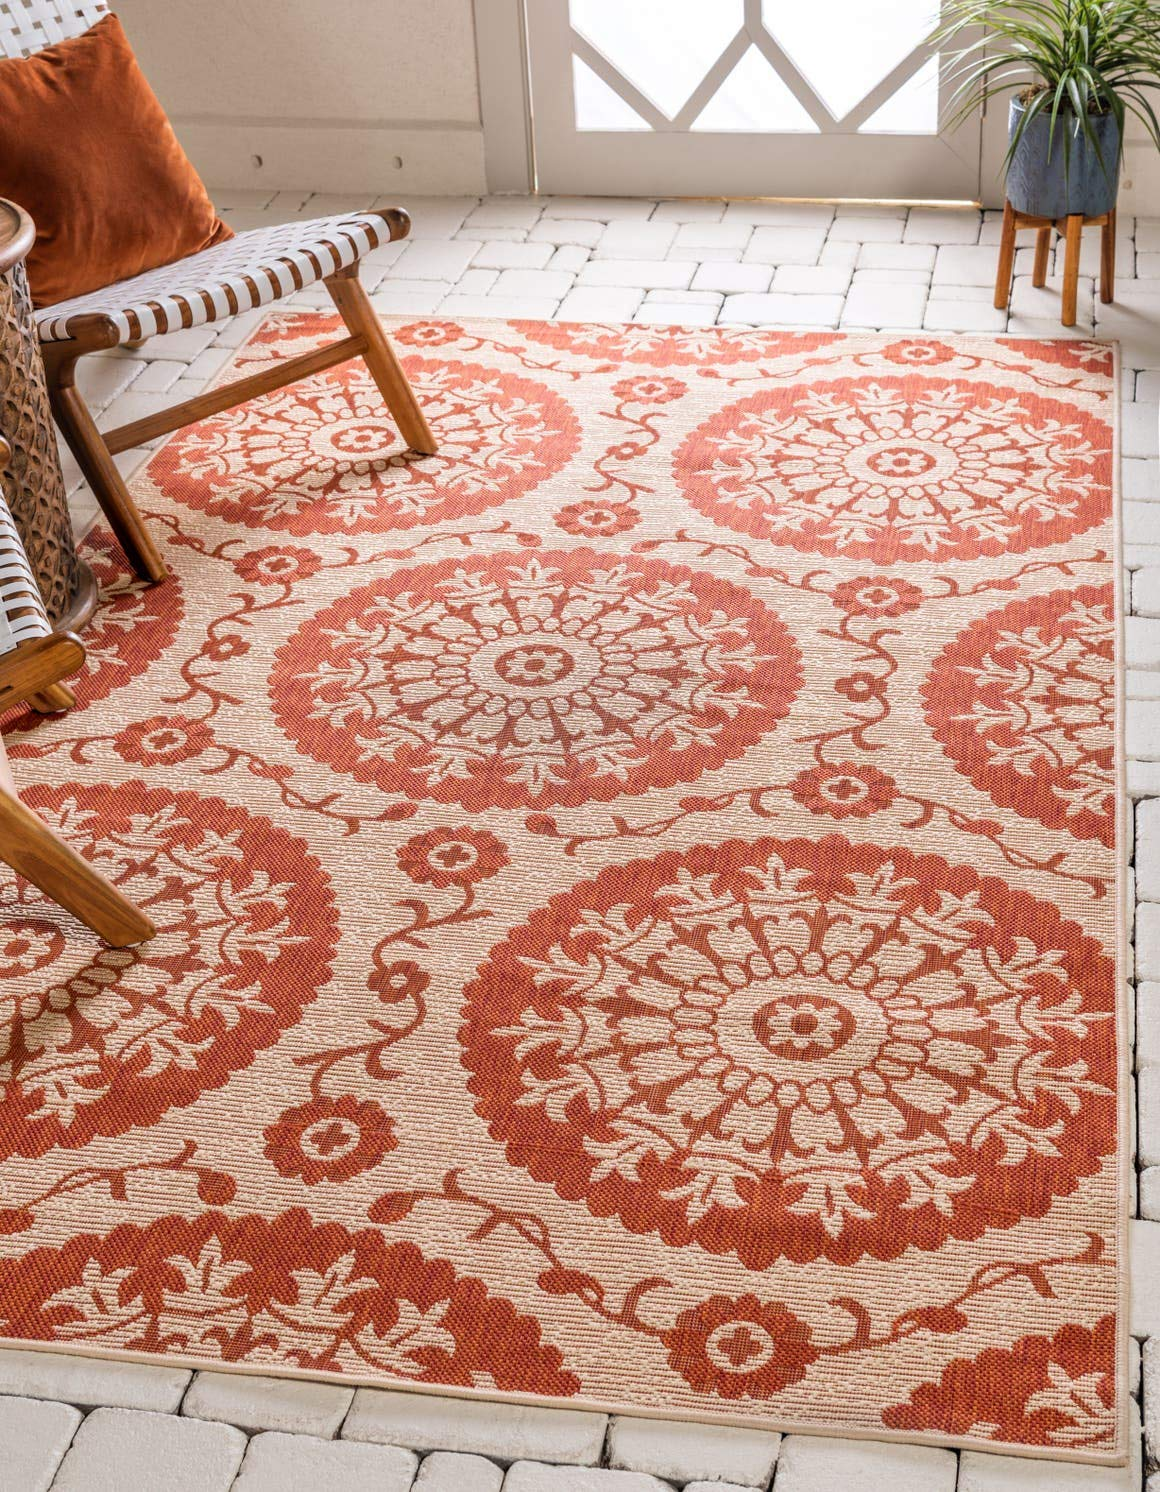 Unique Loom Outdoor Botanical Collection Floral Abstract Transitional Indoor and Outdoor Flatweave Beige Terracotta Area Rug 6 0 x 9 0